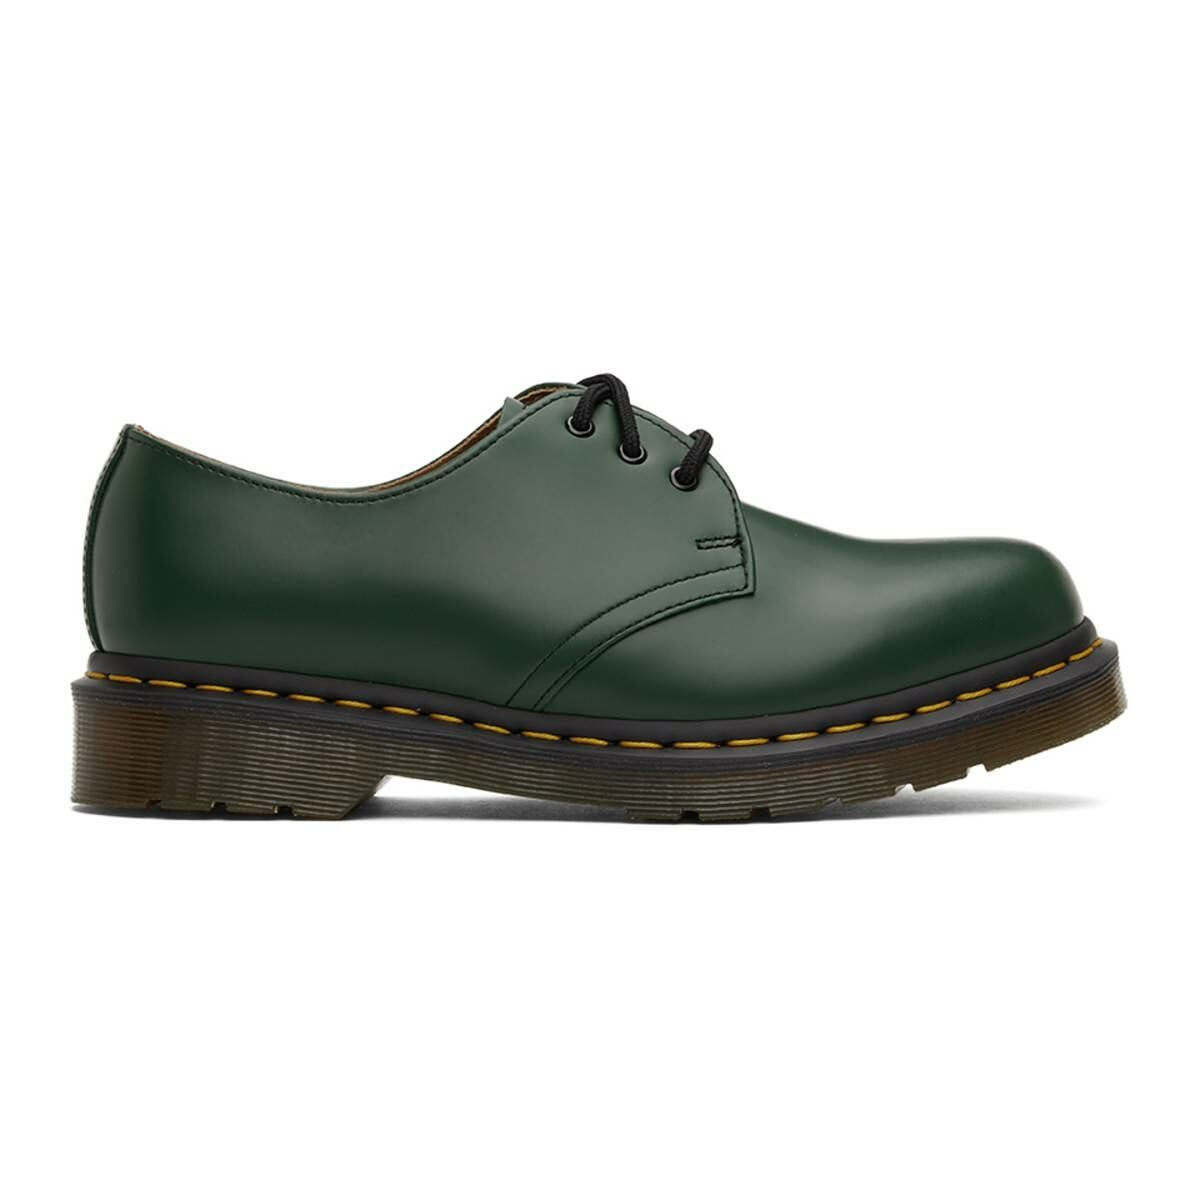 Dr. Martens Green 1461 Derbys Ssense USA MEN Men SHOES Mens FORMAL SHOES